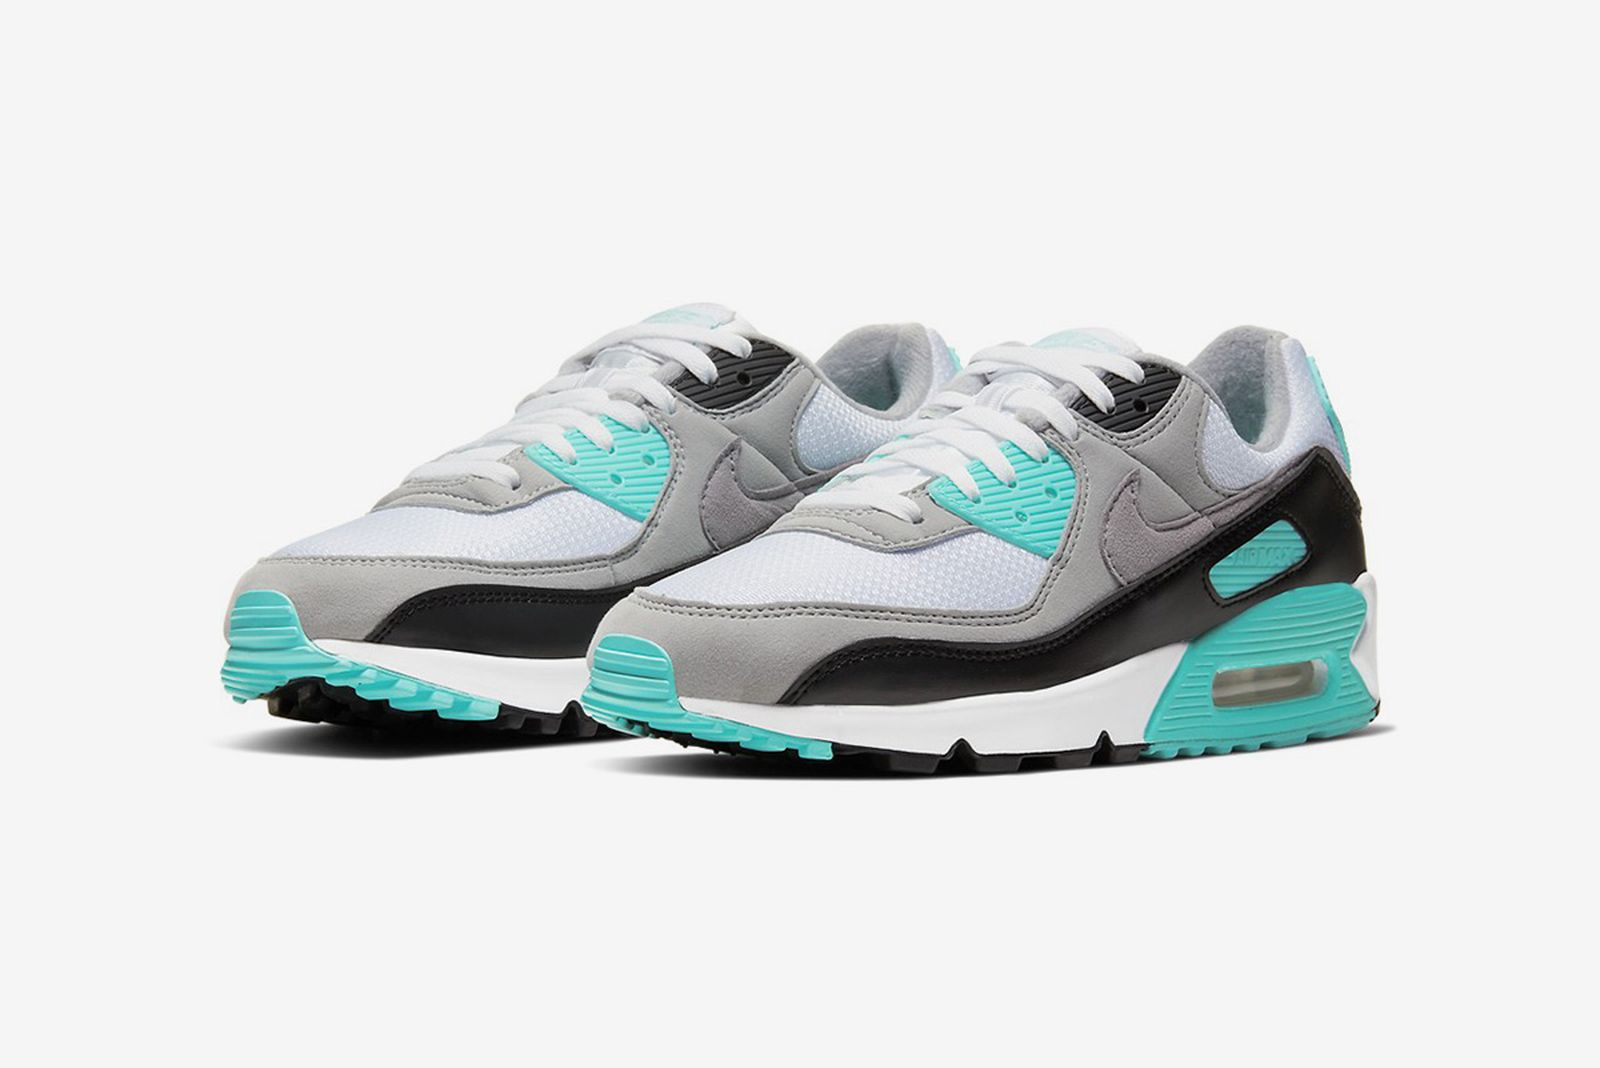 nike-air-max-90-30th-anniversary-colorways-release-date-price-1-03